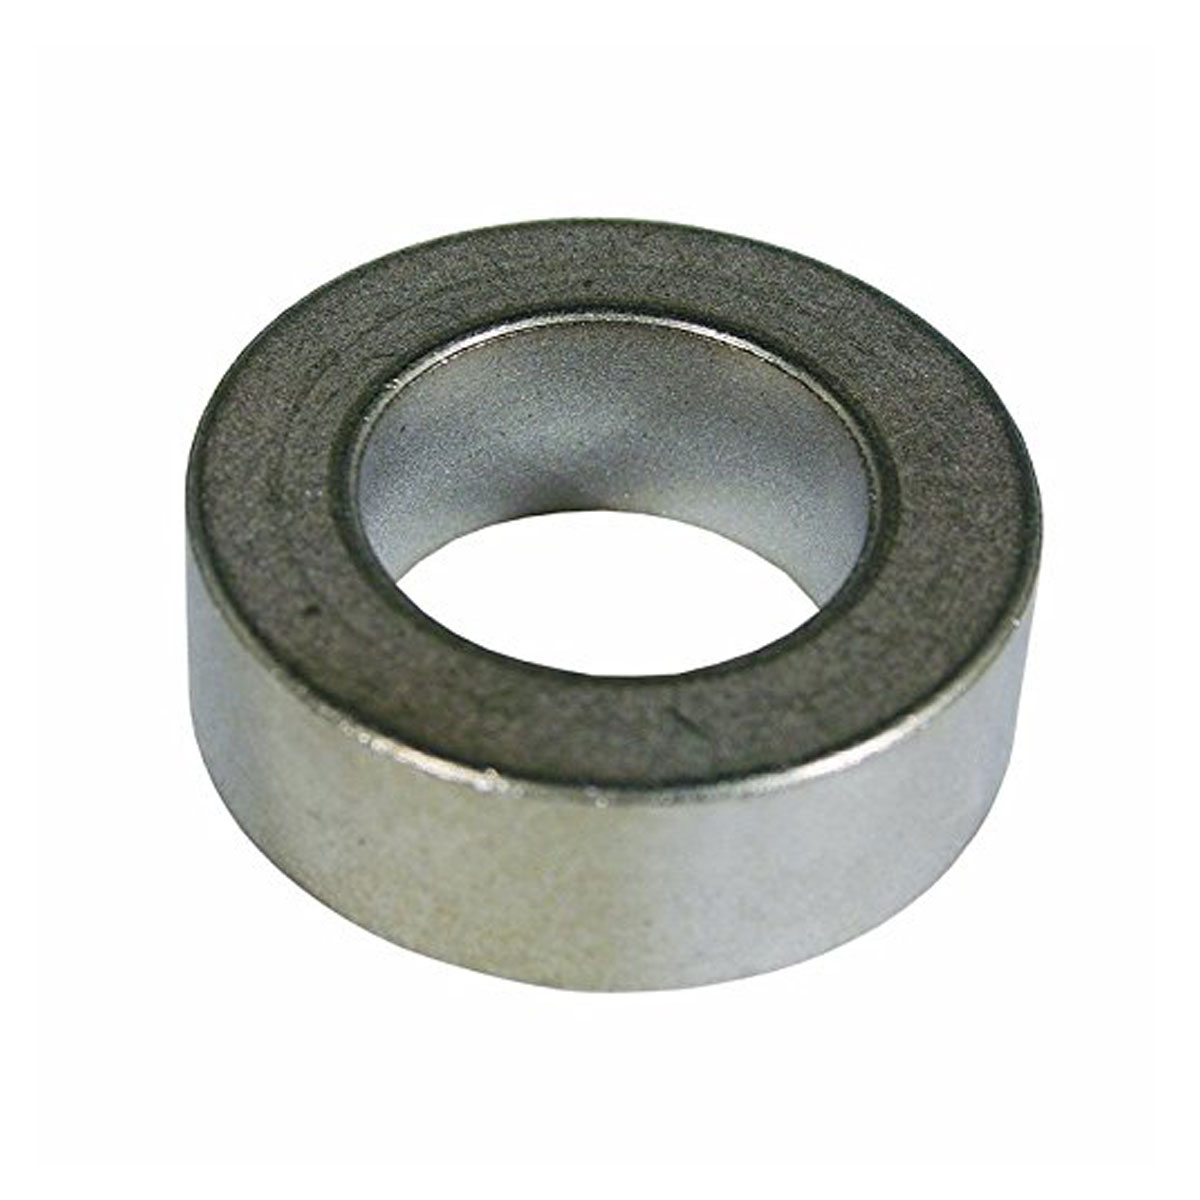 Scag Caster Wheel Spacer 43037-01